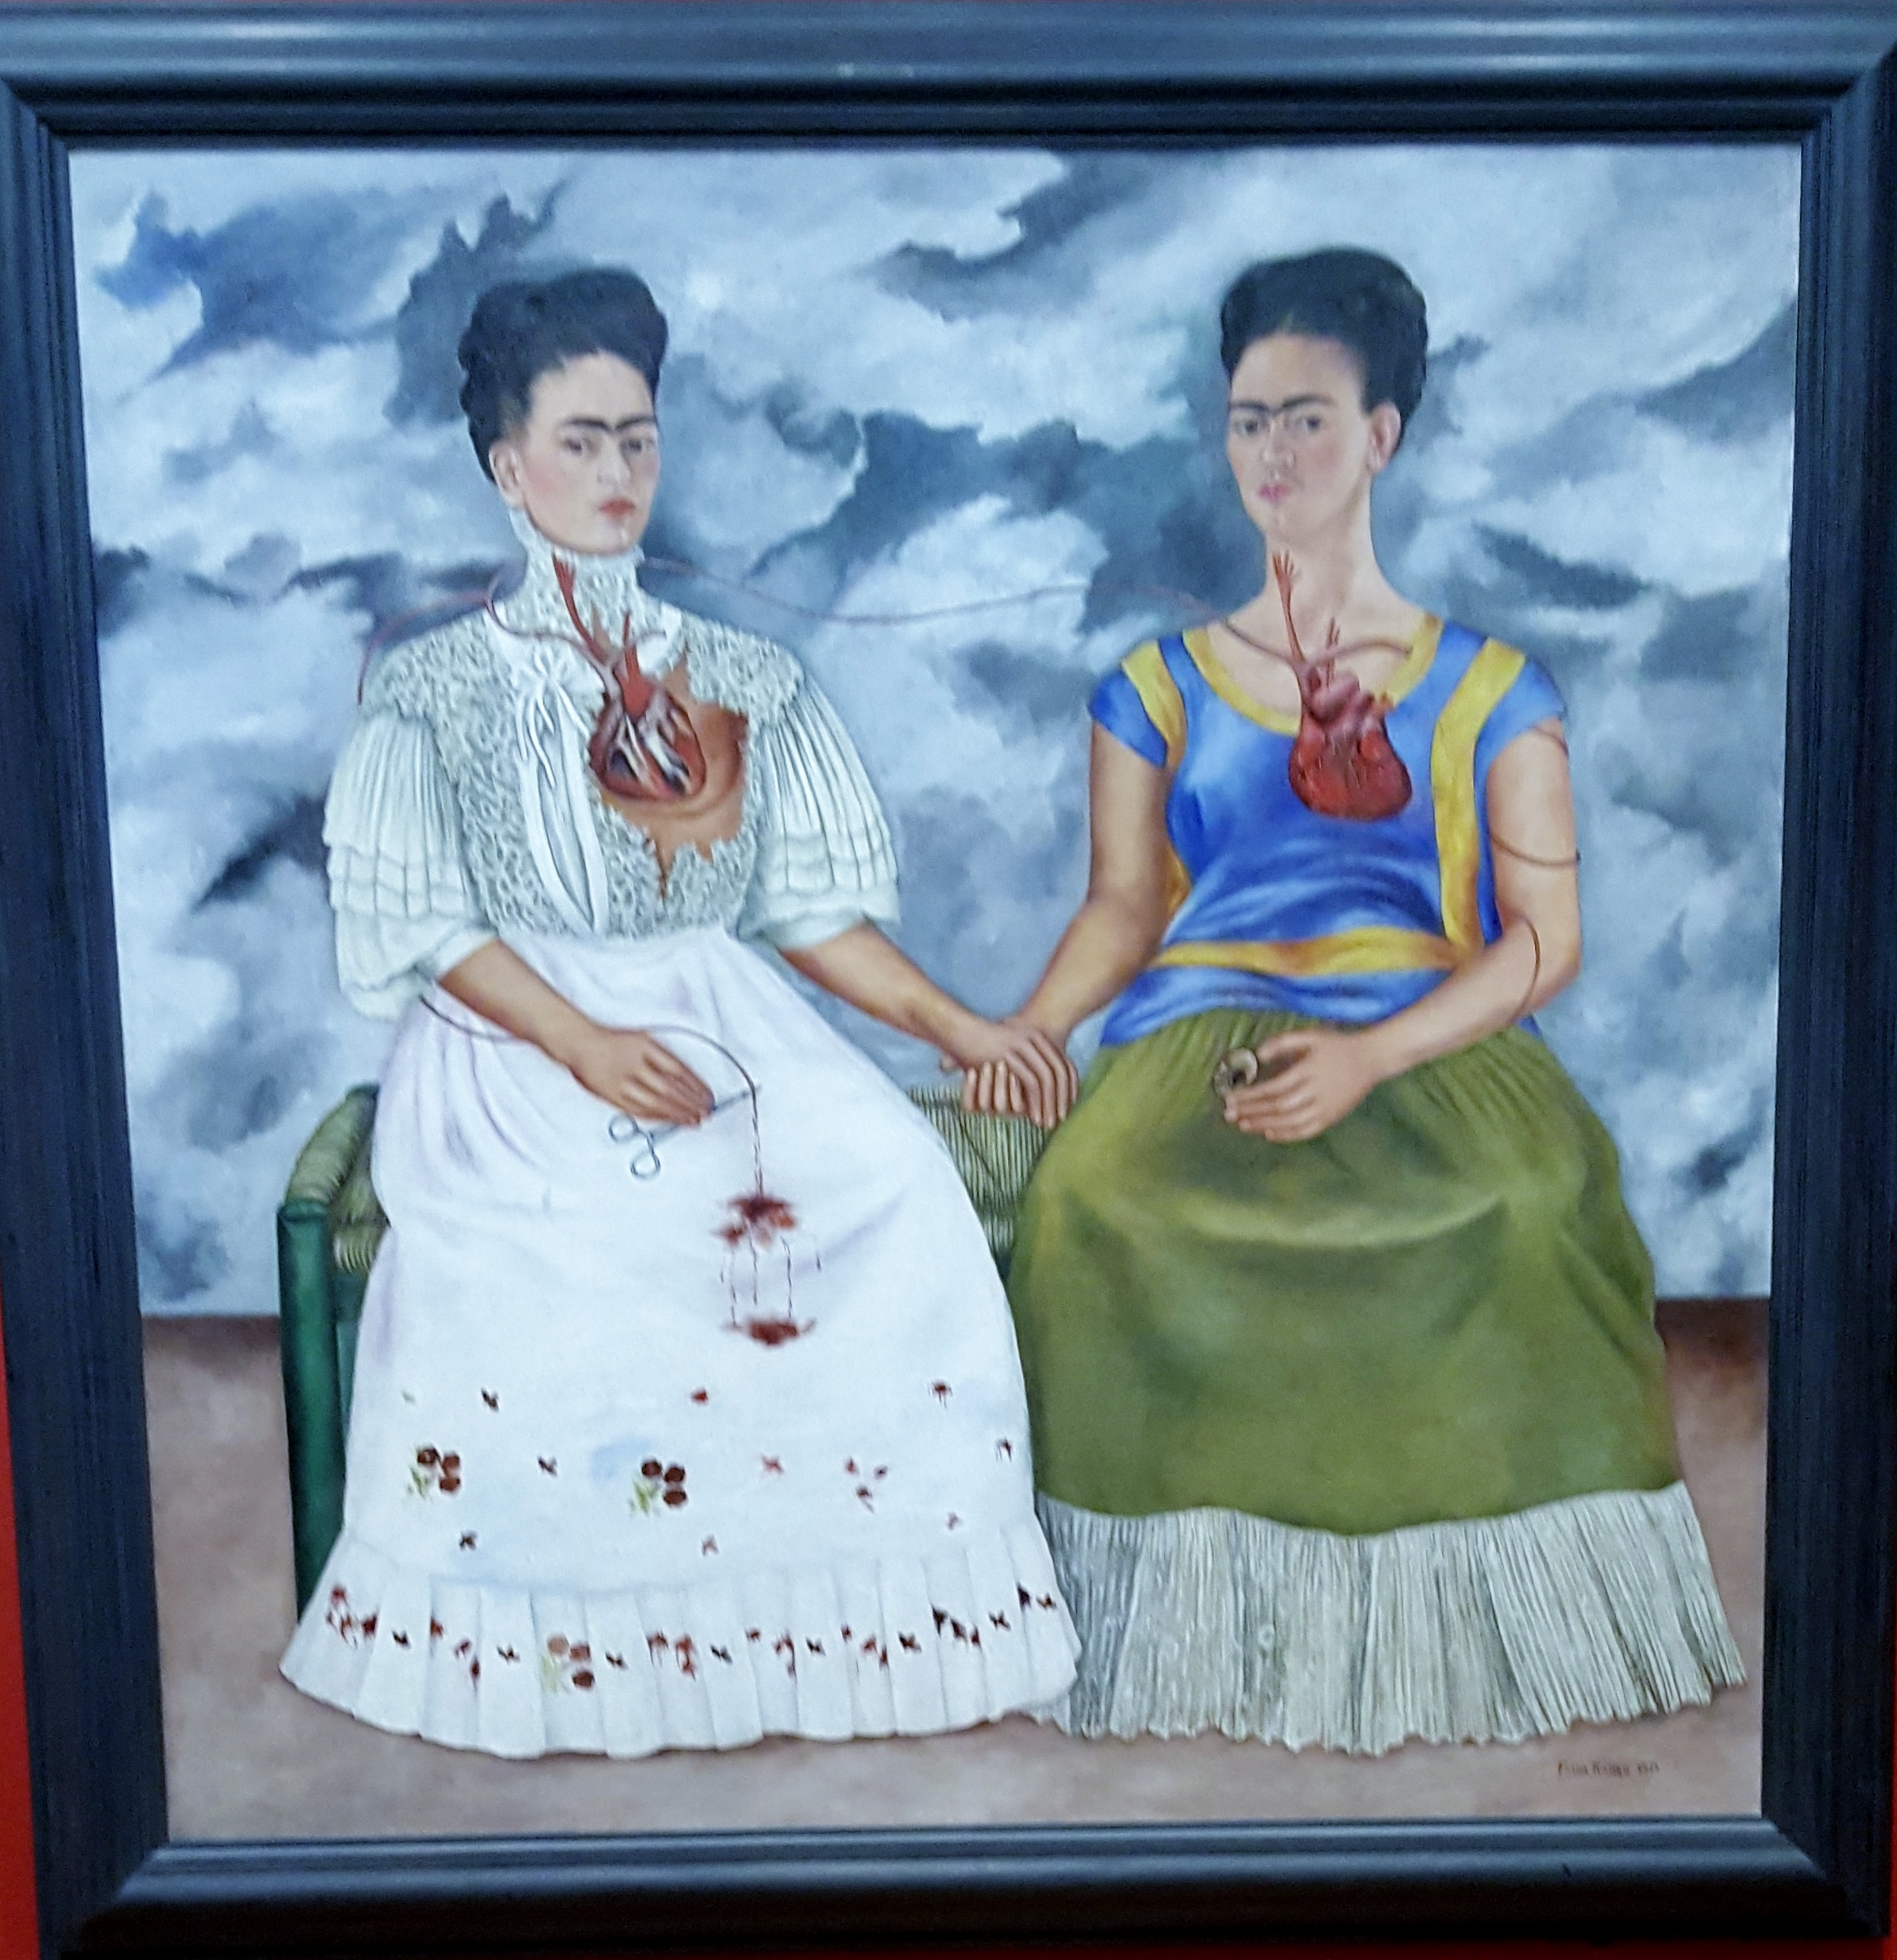 The Two Fridas by Frida Kahlo - my photo of the original from the current Dallas Museum of Art exhibition Mexico 1900-1950